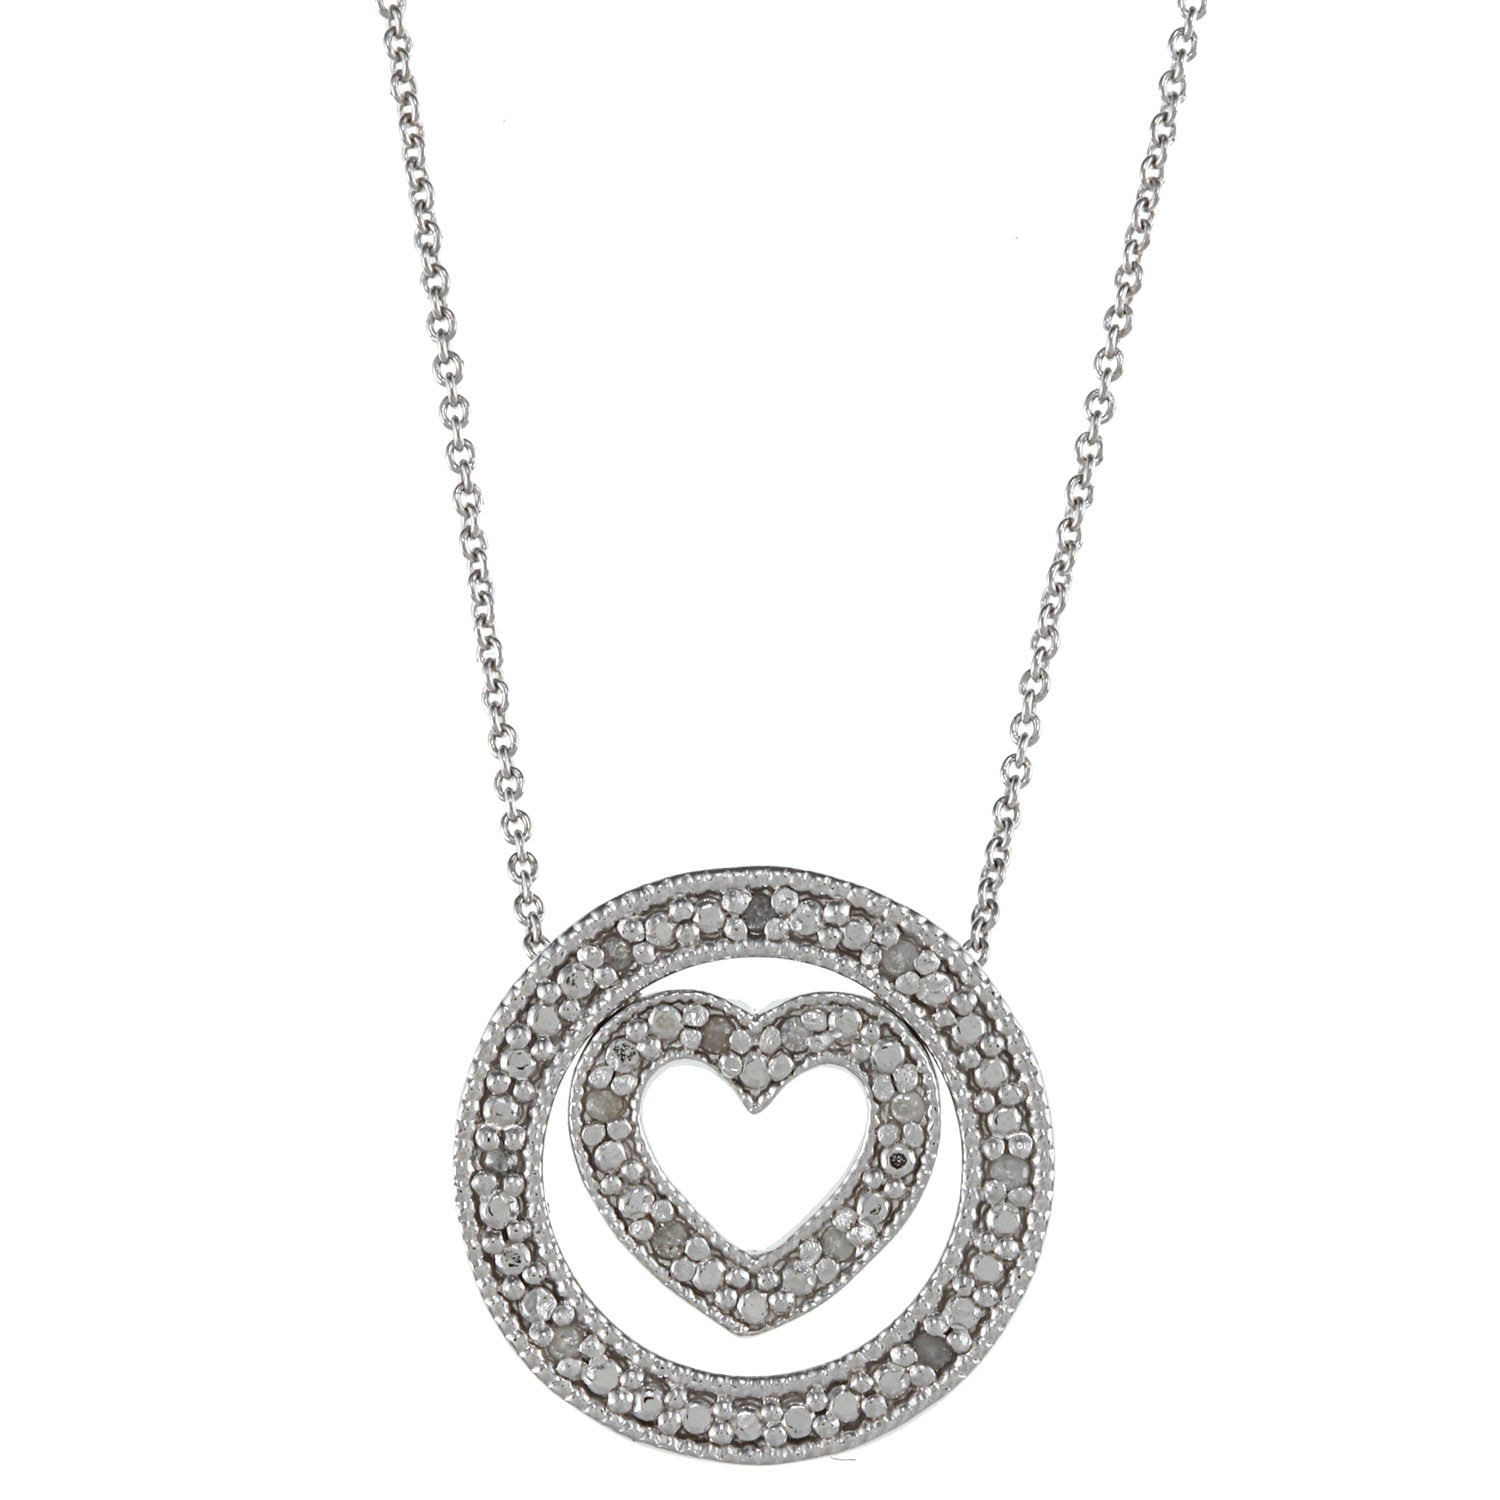 1/8 Carat Diamond Sterling Silver 3 in 1 Circle Heart Necklace